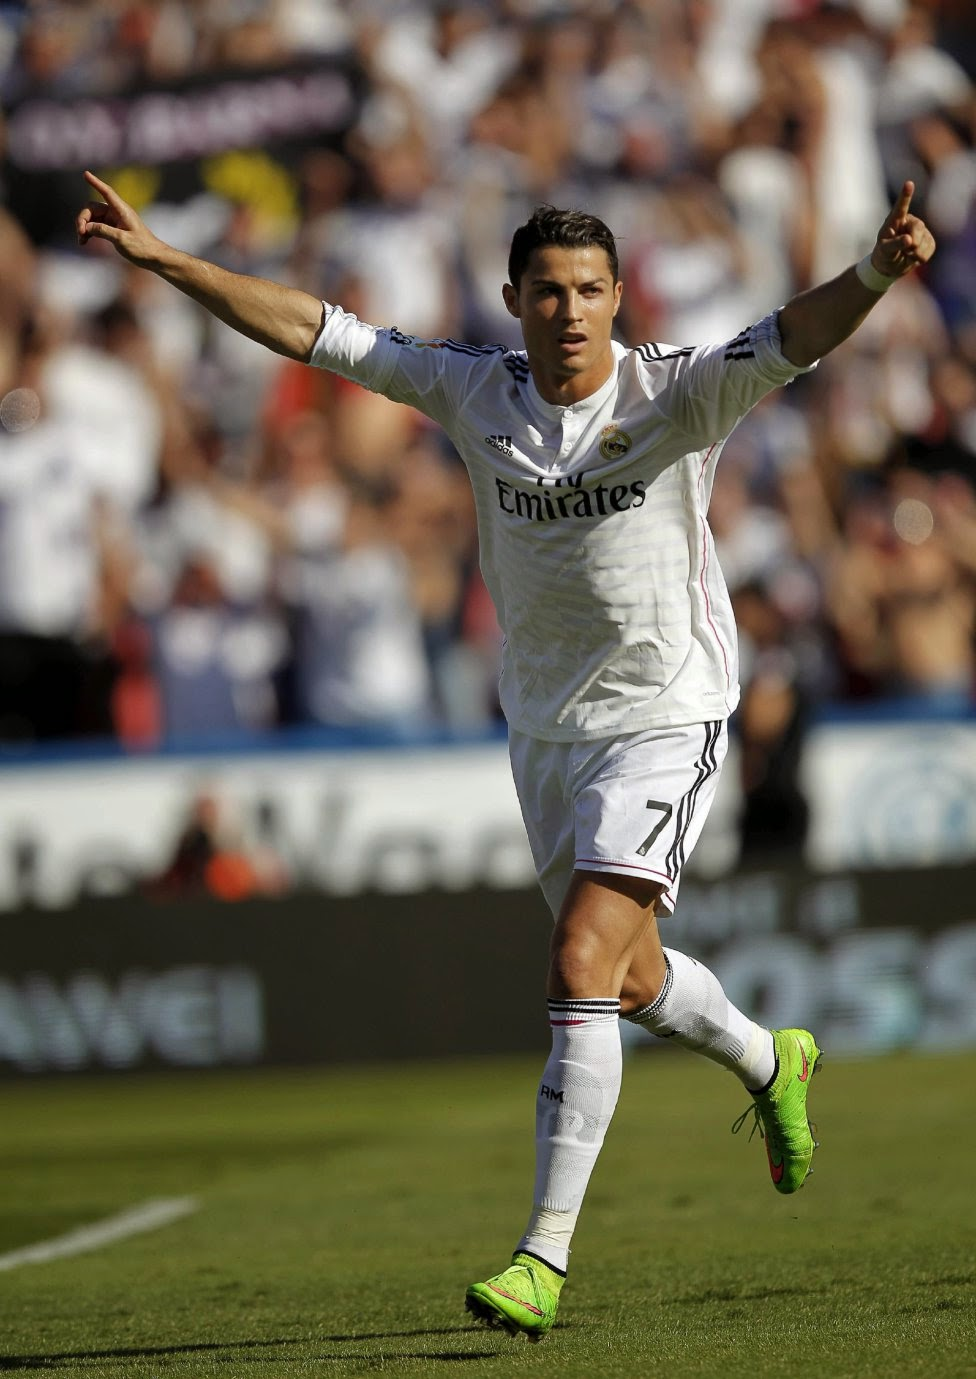 http://pictures4girls.blogspot.com/2014/10/real-madrid-crushes-levante-boukmasip.html